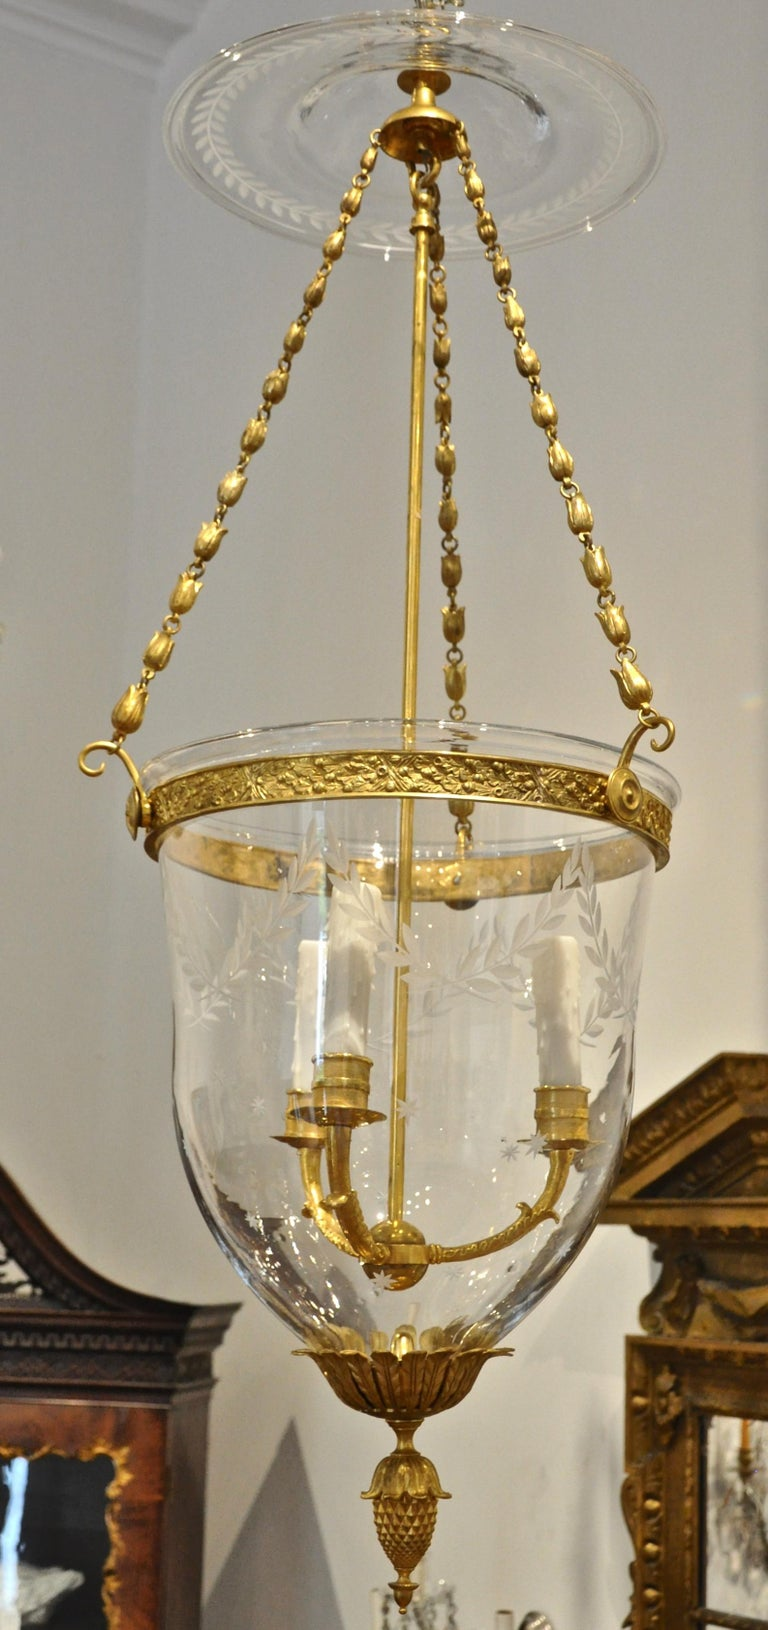 Russian Gilt Bronze Neoclassical Style Bell Jar Hall Lantern In Good Condition For Sale In Essex, MA